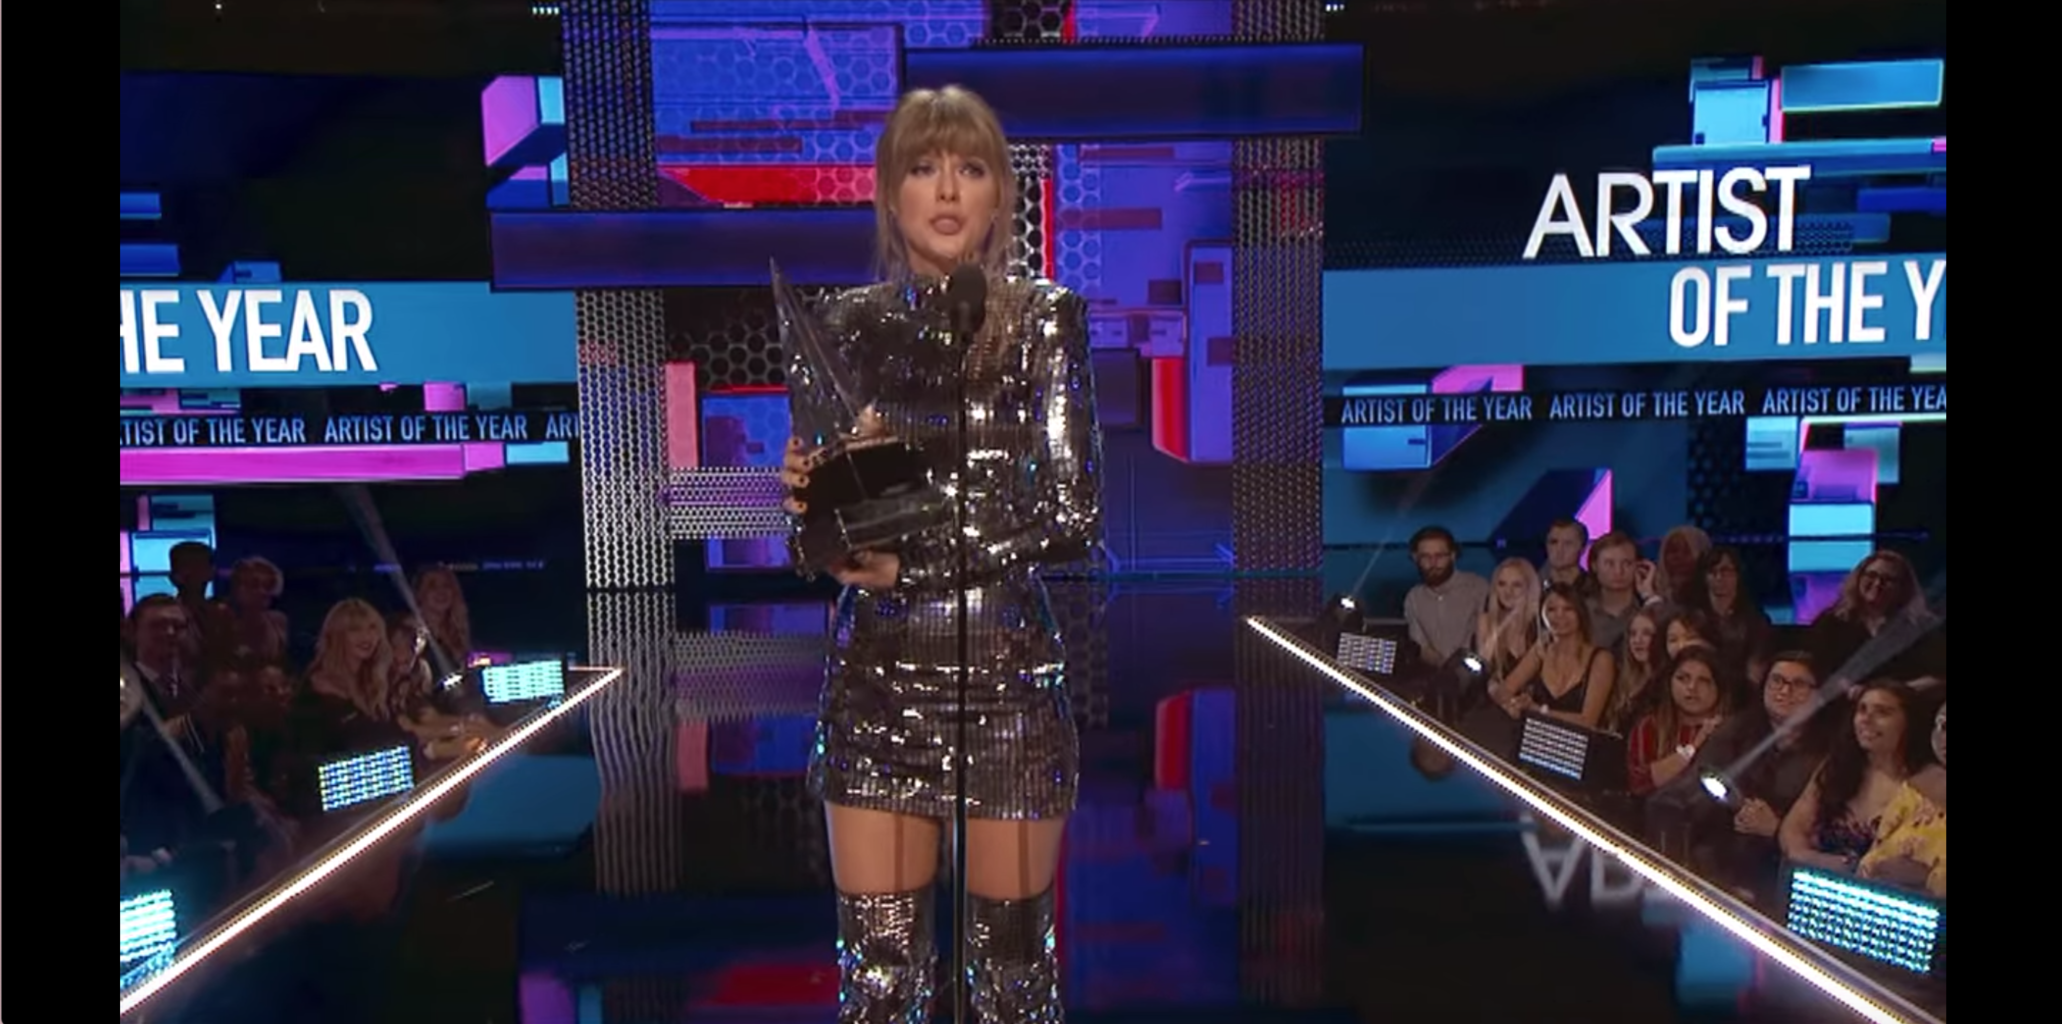 Taylor Swift Miss Americana outfit - Taylor winning Artist of the Year in her disco ball outfit